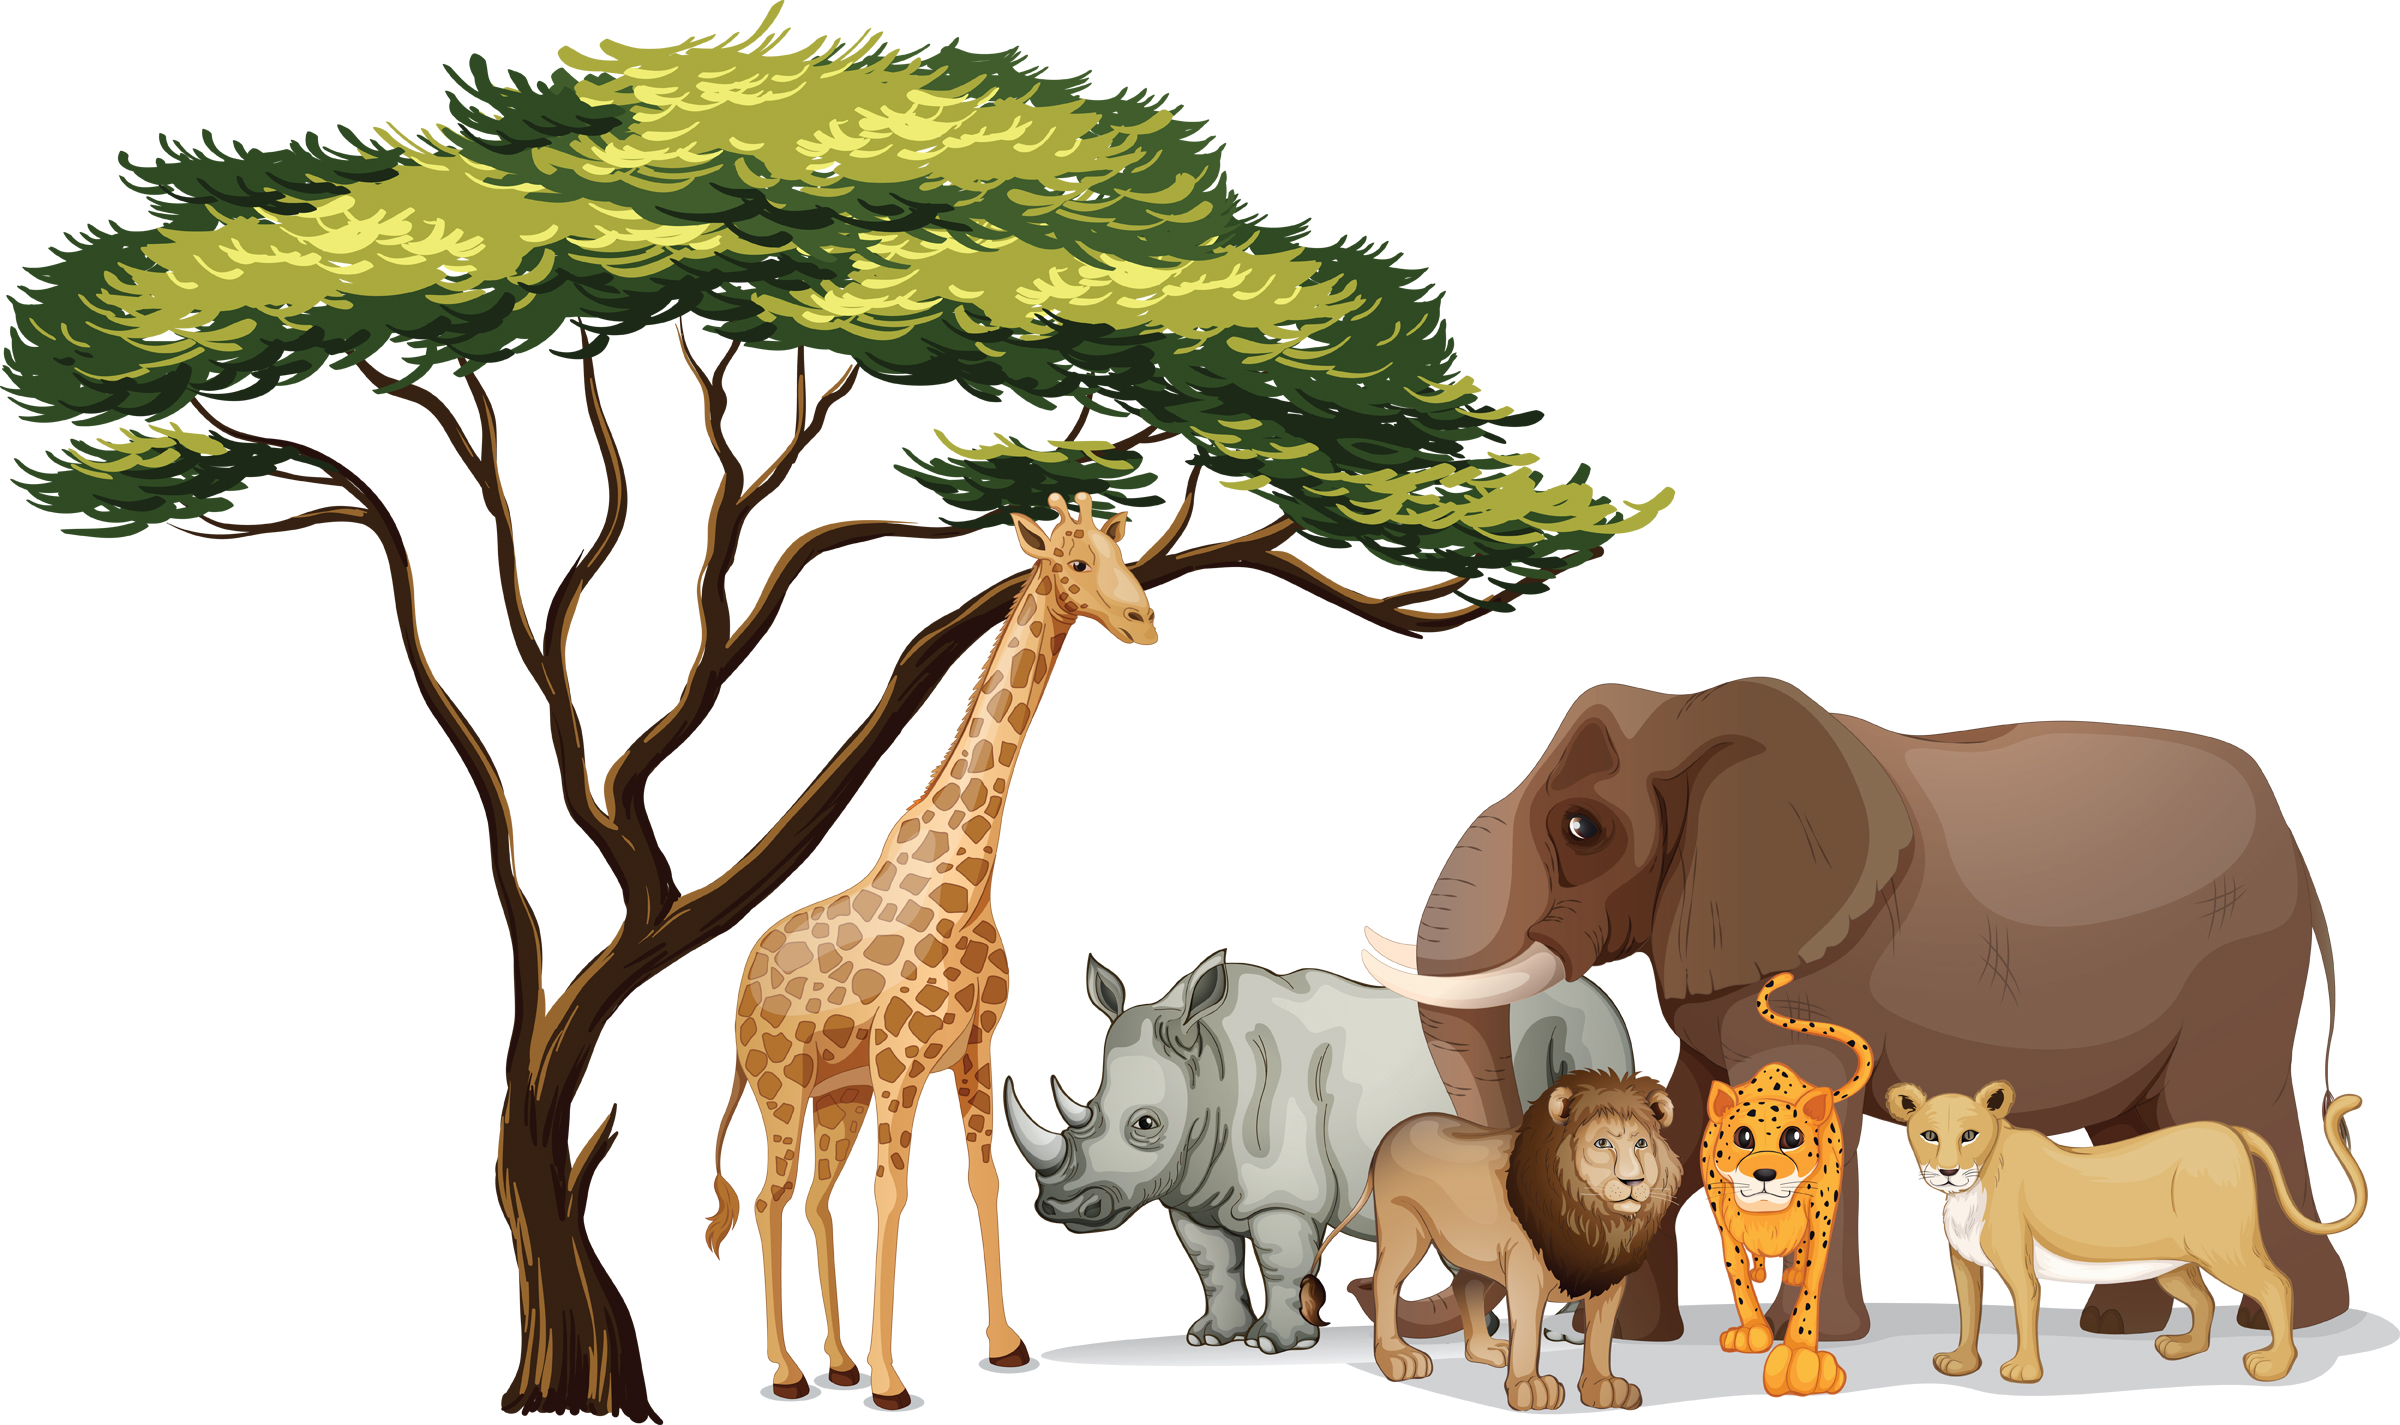 Animals PNG Free Clipart Images - Free Transparent PNG Logos